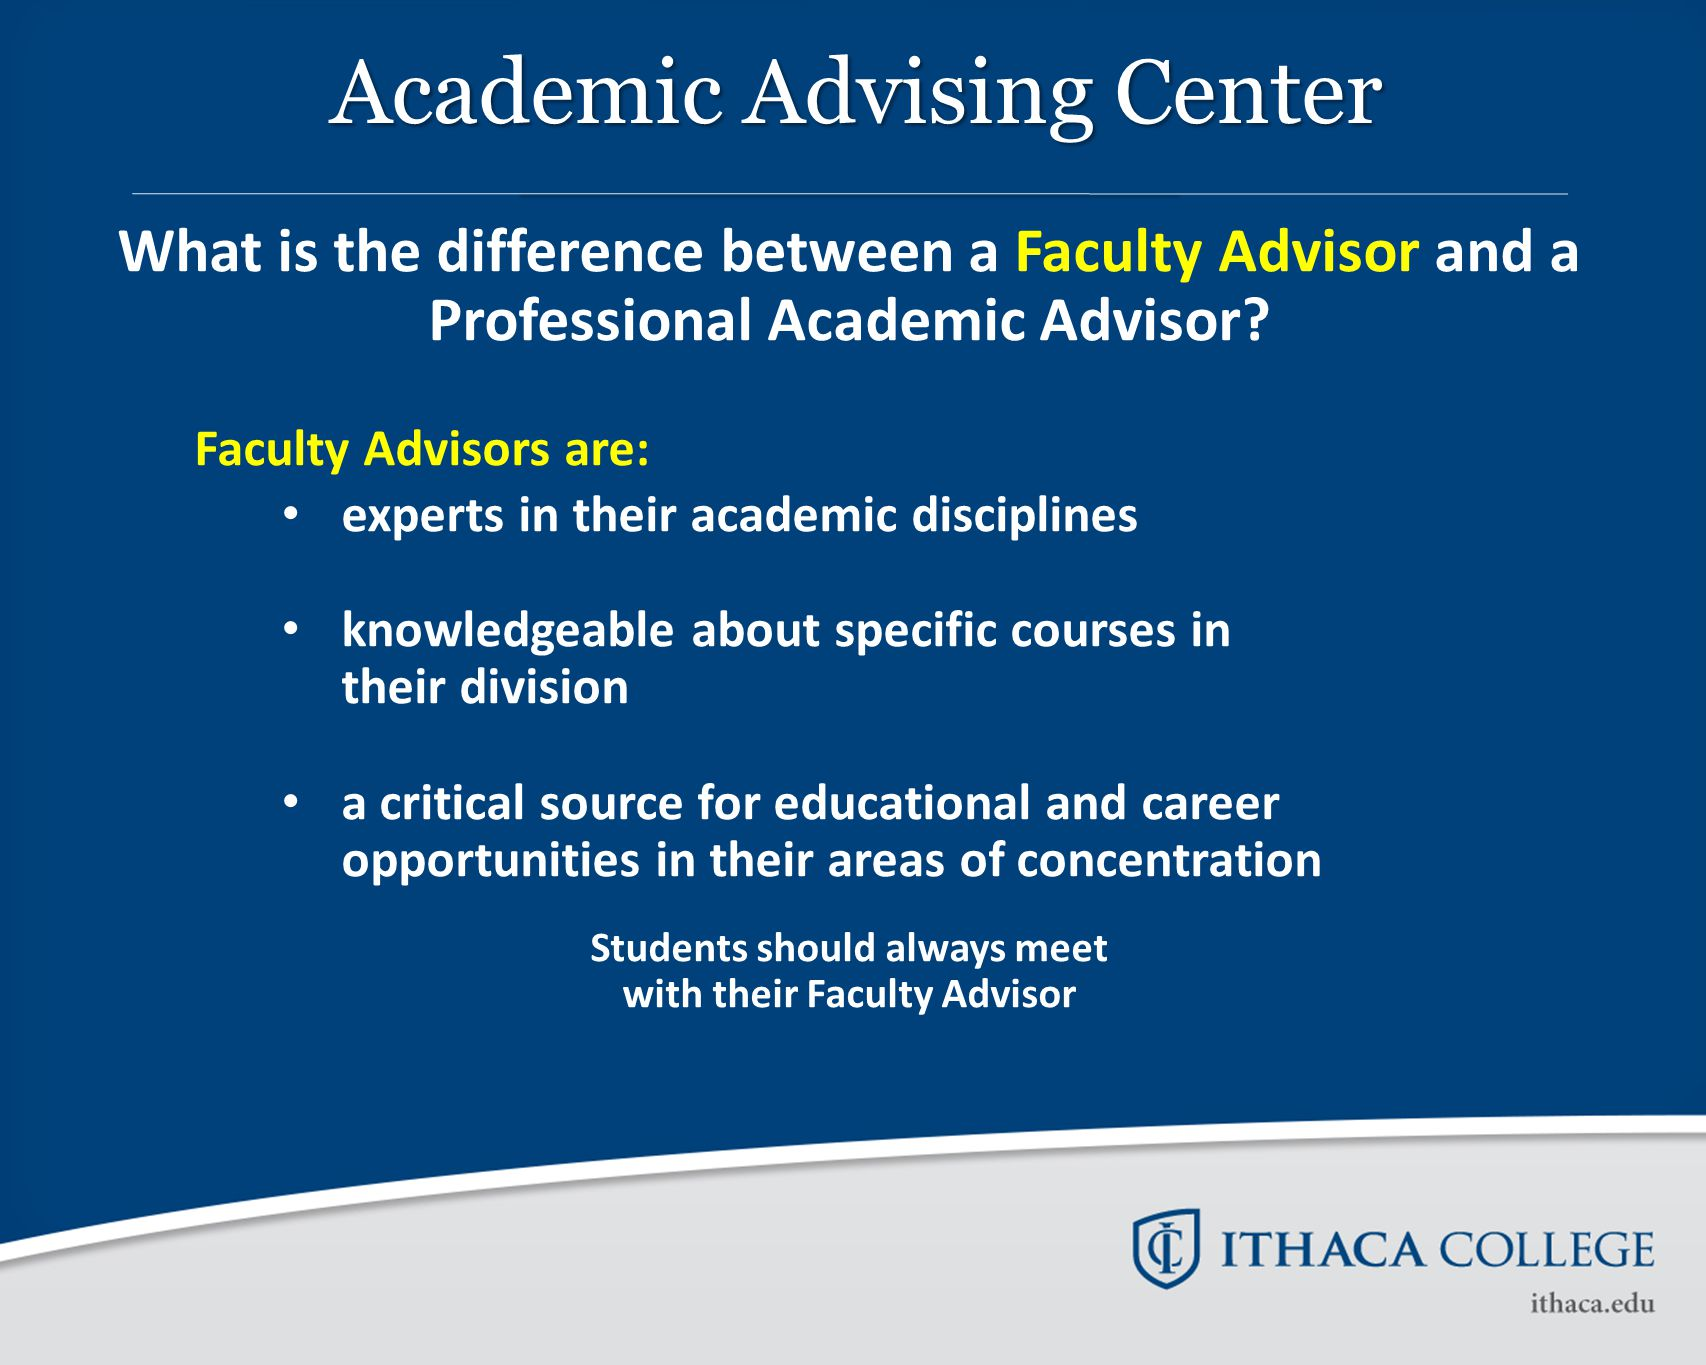 What is the difference between a Faculty Advisor and a Professional Academic Advisor? Faculty Advisors are: experts in their academic disciplines know